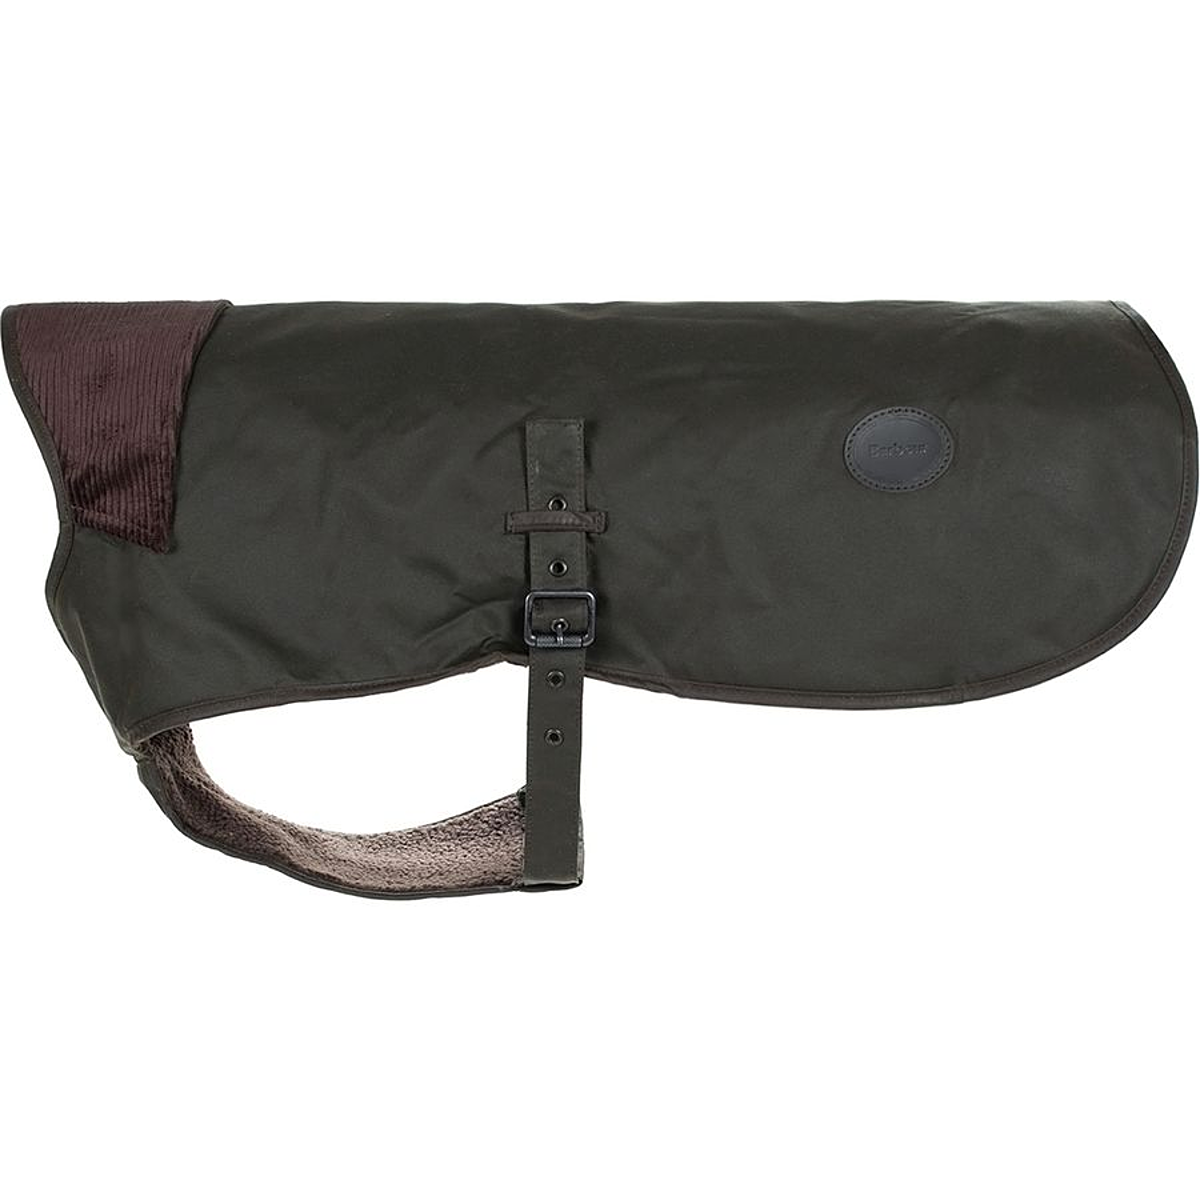 Barbour Utility Dog Coat